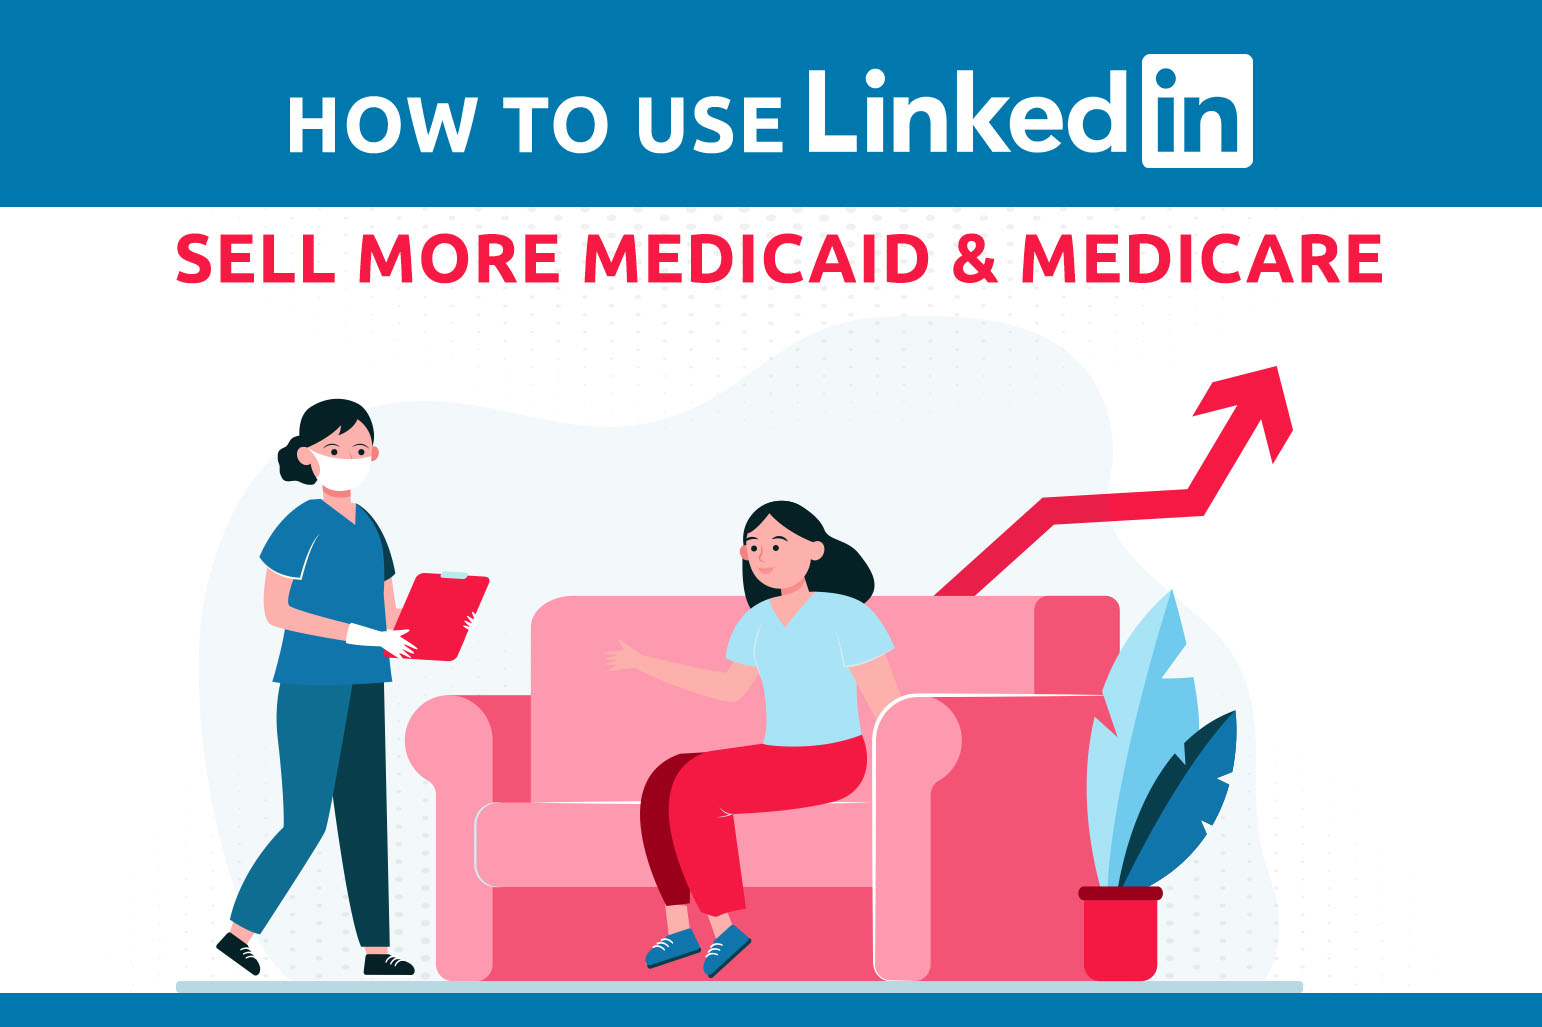 How To Use LinkedIn To Sell More Medicaid & Medicare